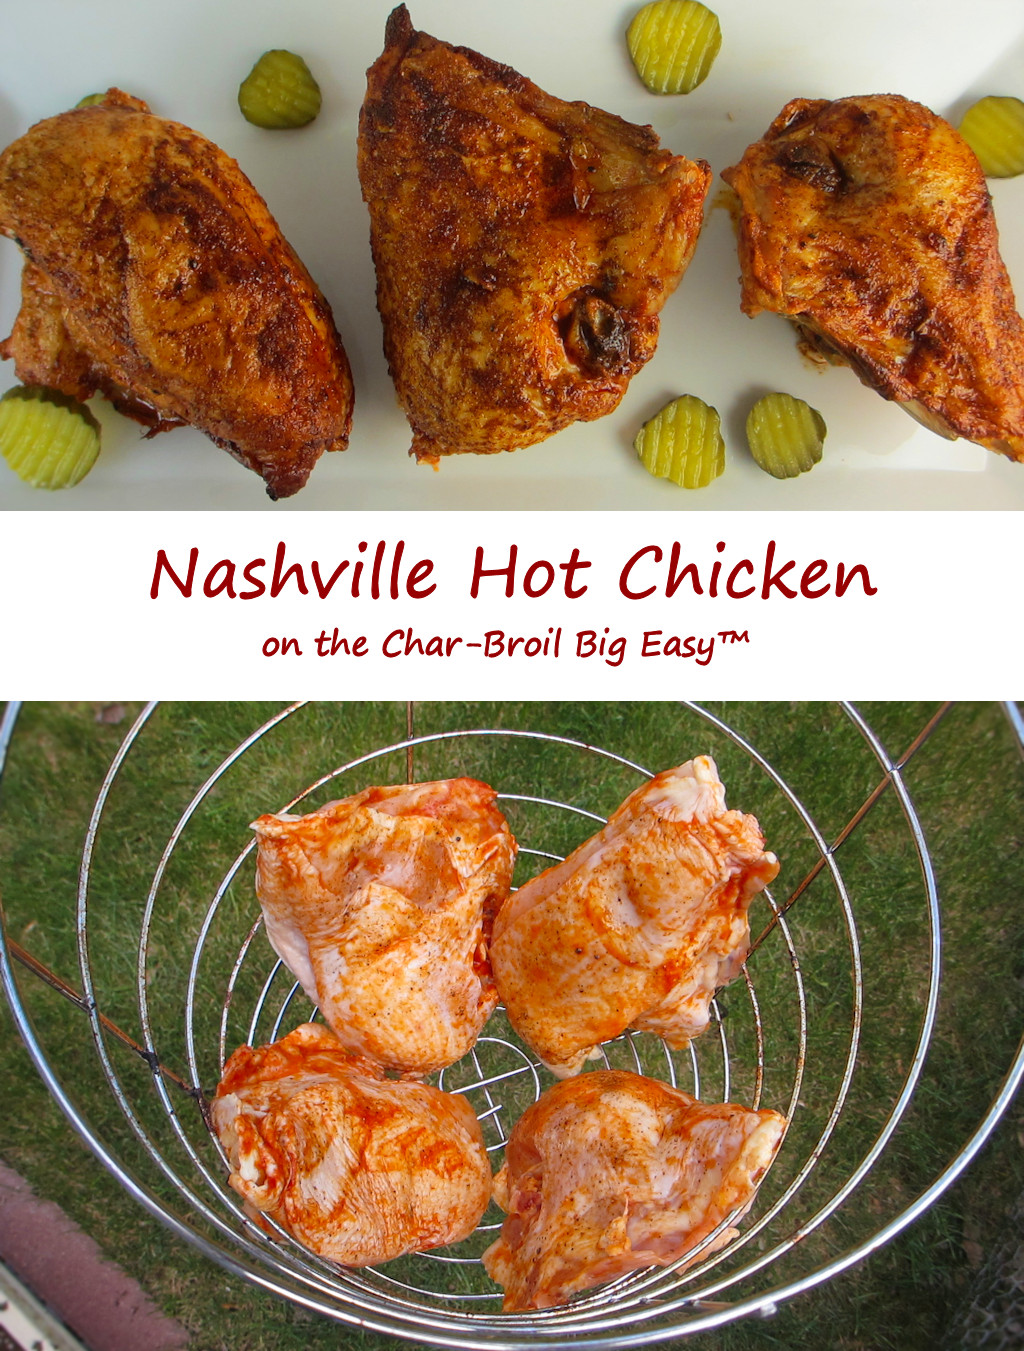 Nashville Hot Chicken on the Char-Broil Big Easy